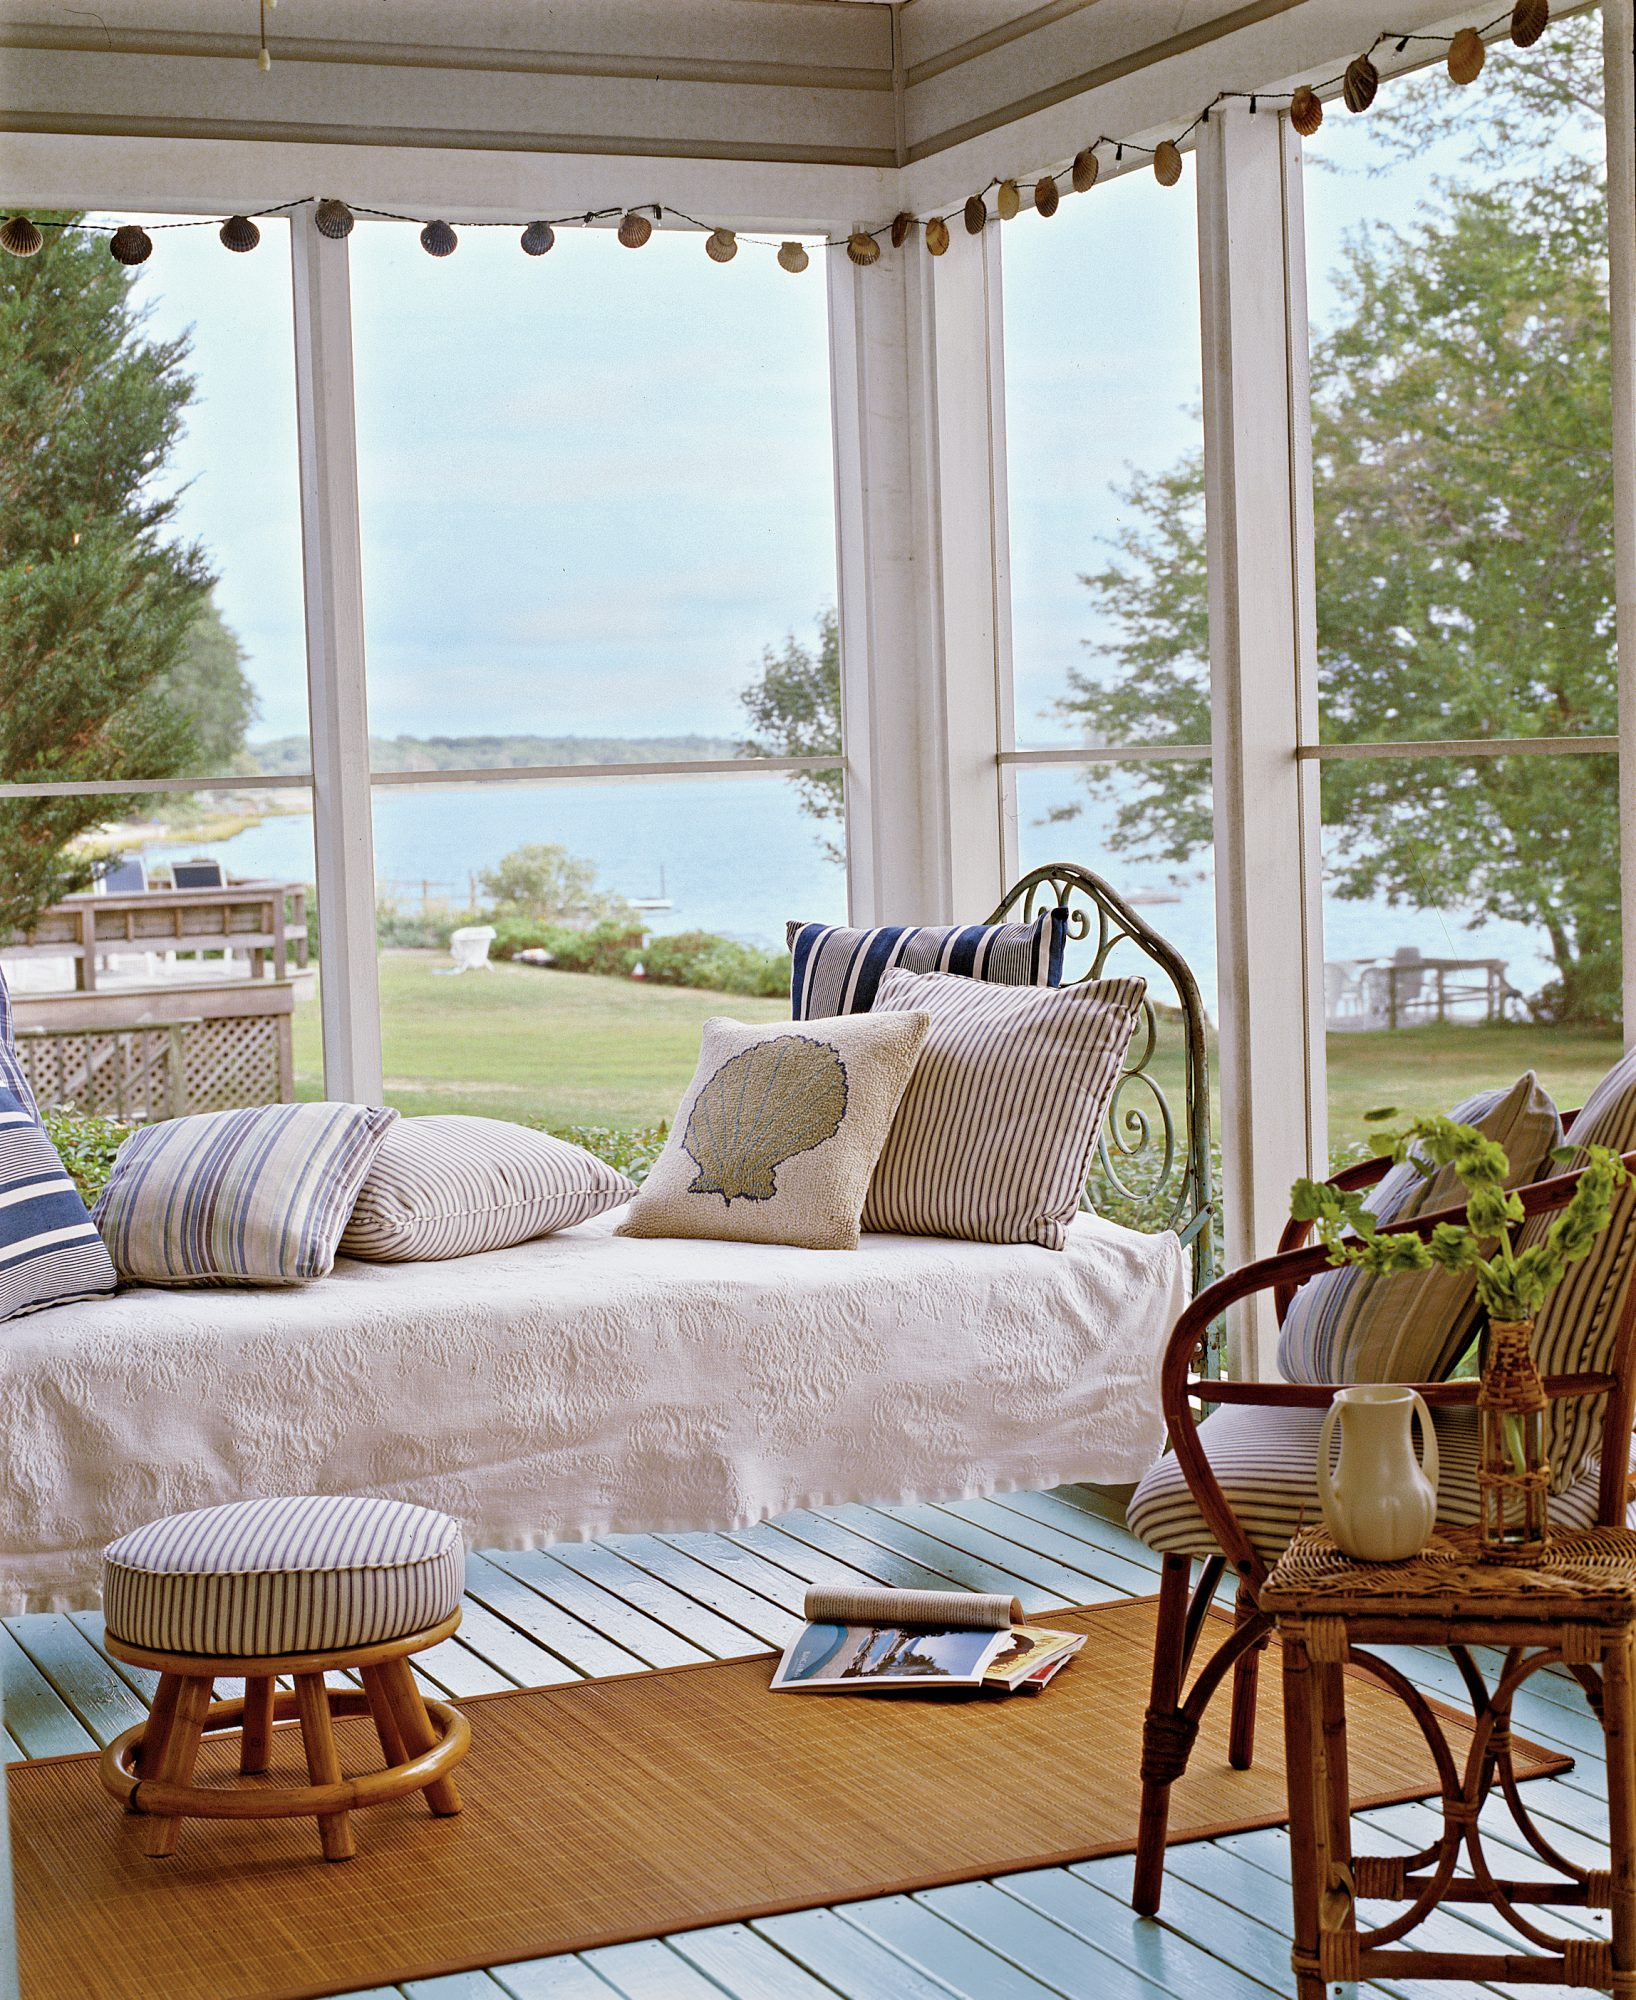 With views of a serene pond beyond, this screened sleeping porch, off the rear of a renovated Long Island beach cottage, is a plum spot for enjoying the salt-spiked air and a beach read. The antique iron bed, blue-green-painted wood floors, and rattan fur